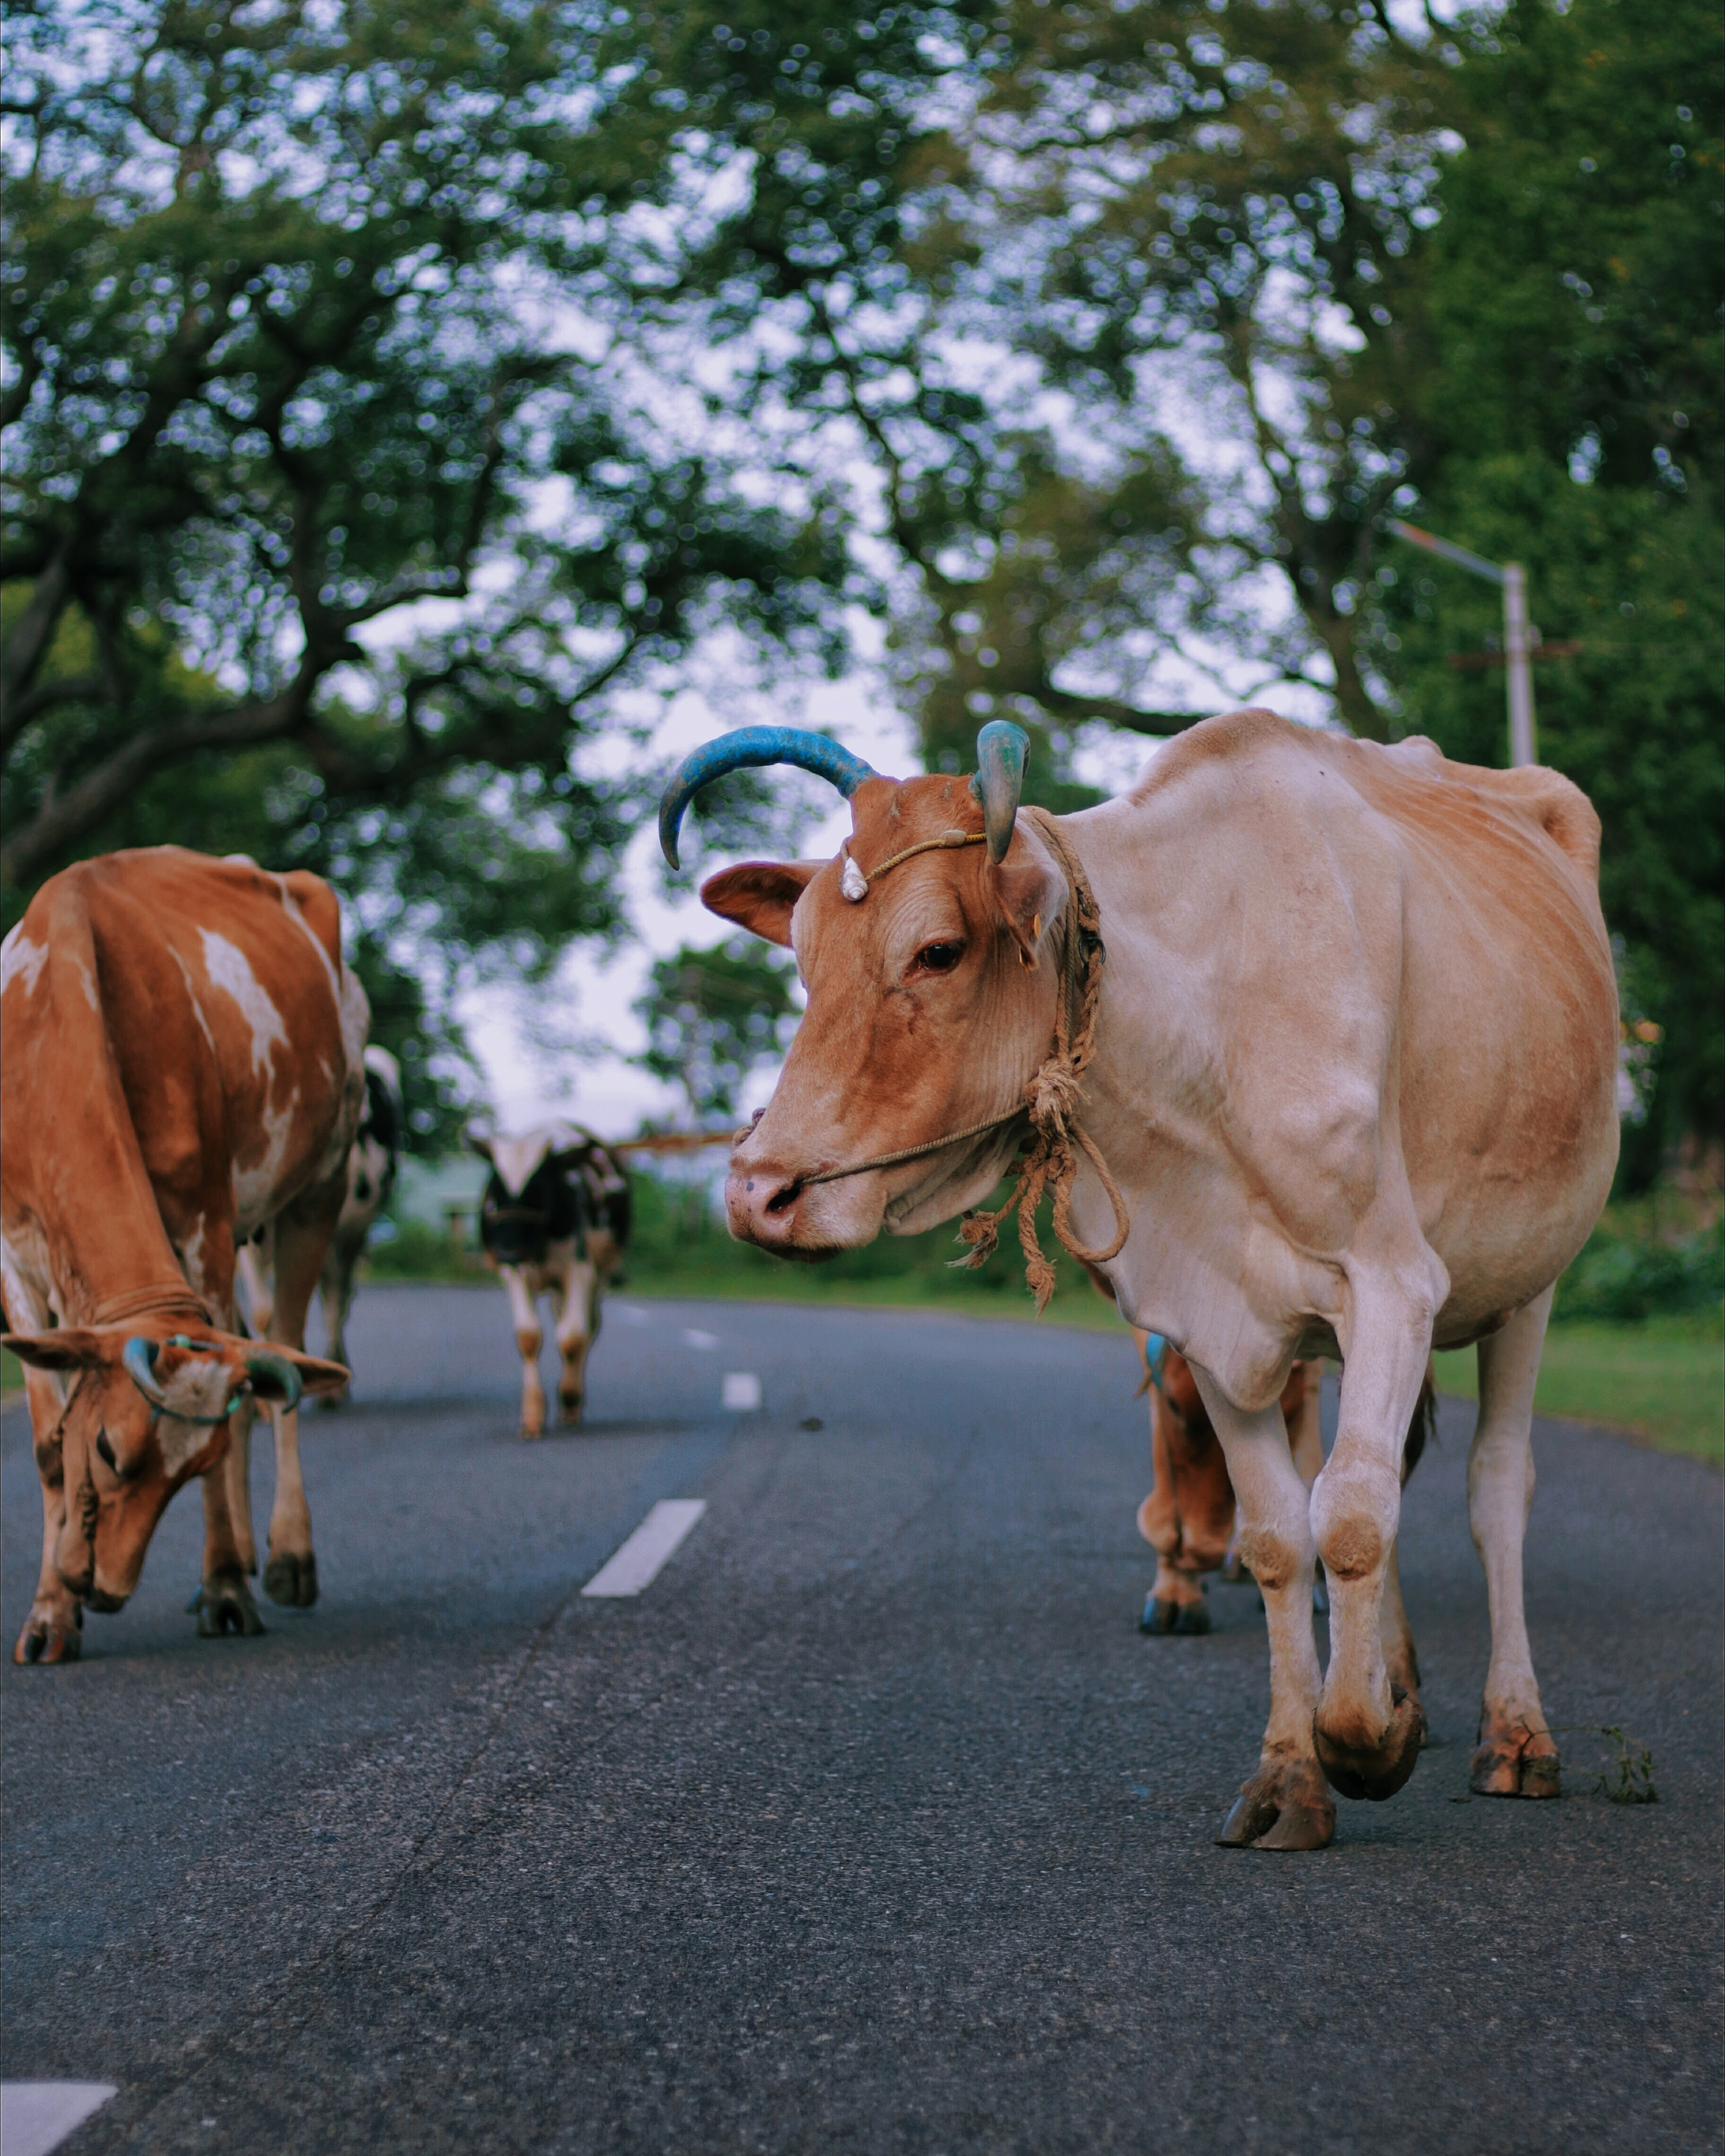 two brown cows walking near green leafed trees